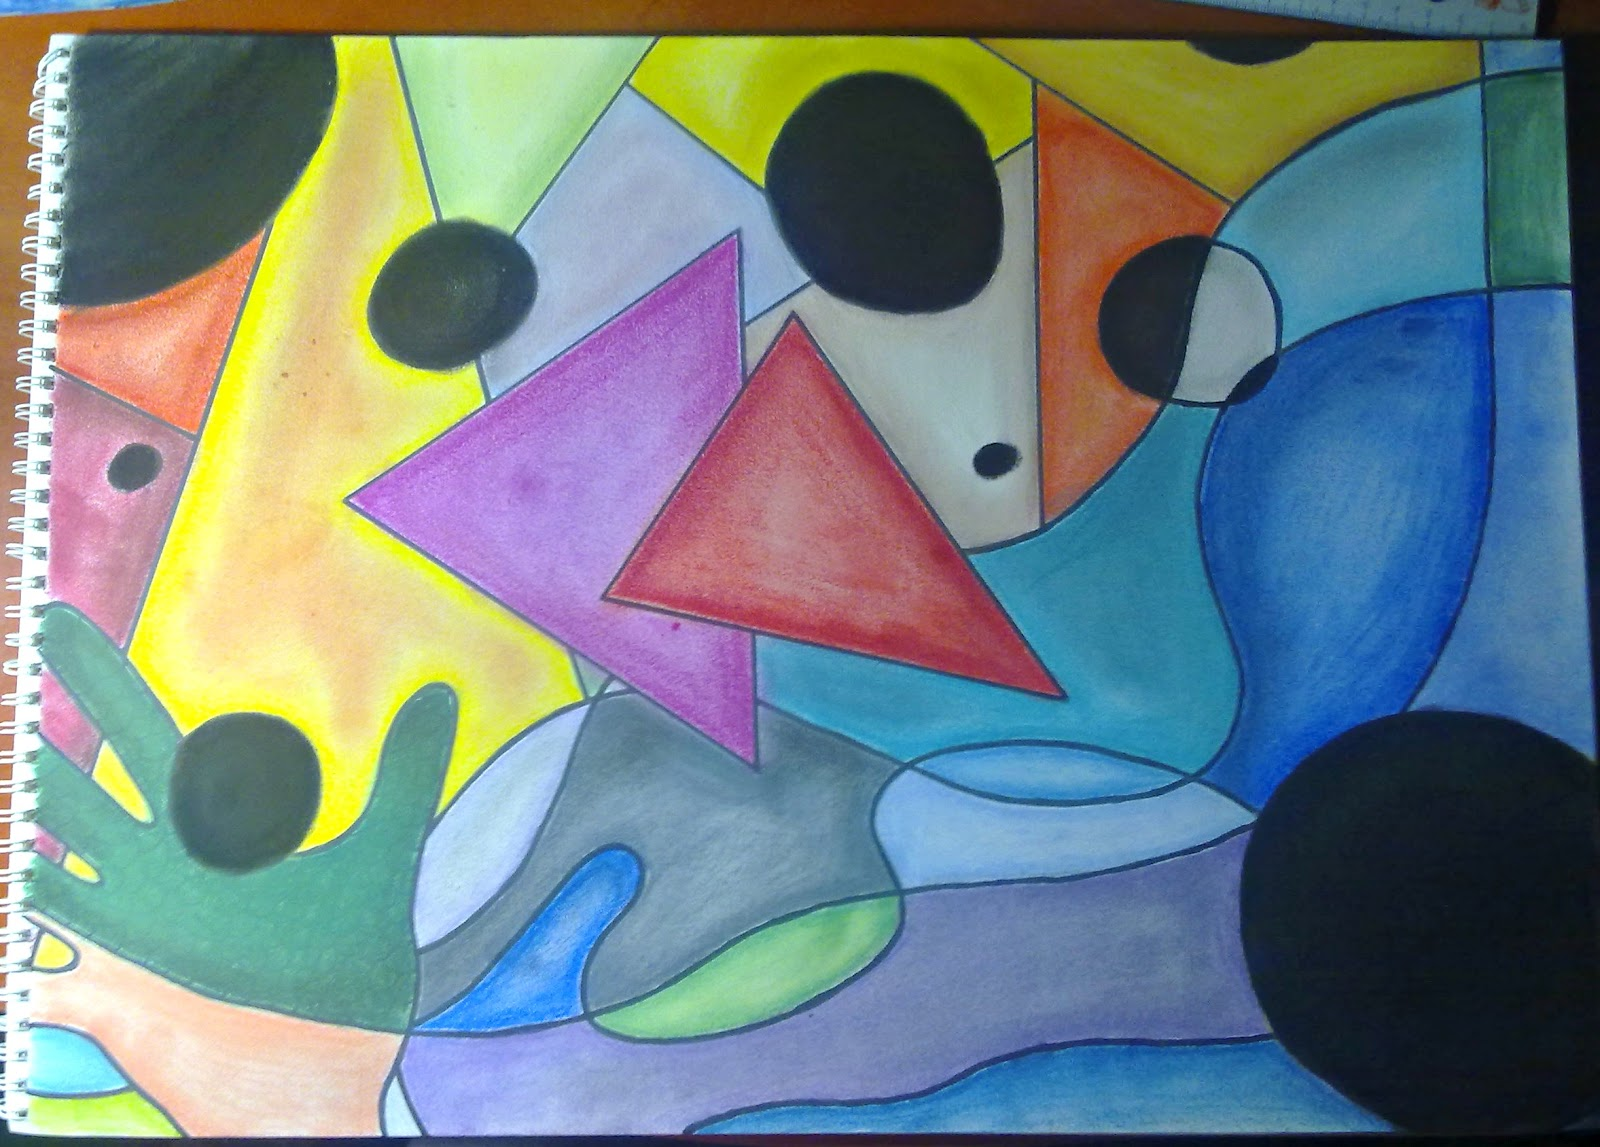 Sara's Kingdom: Dibujo Abstracto